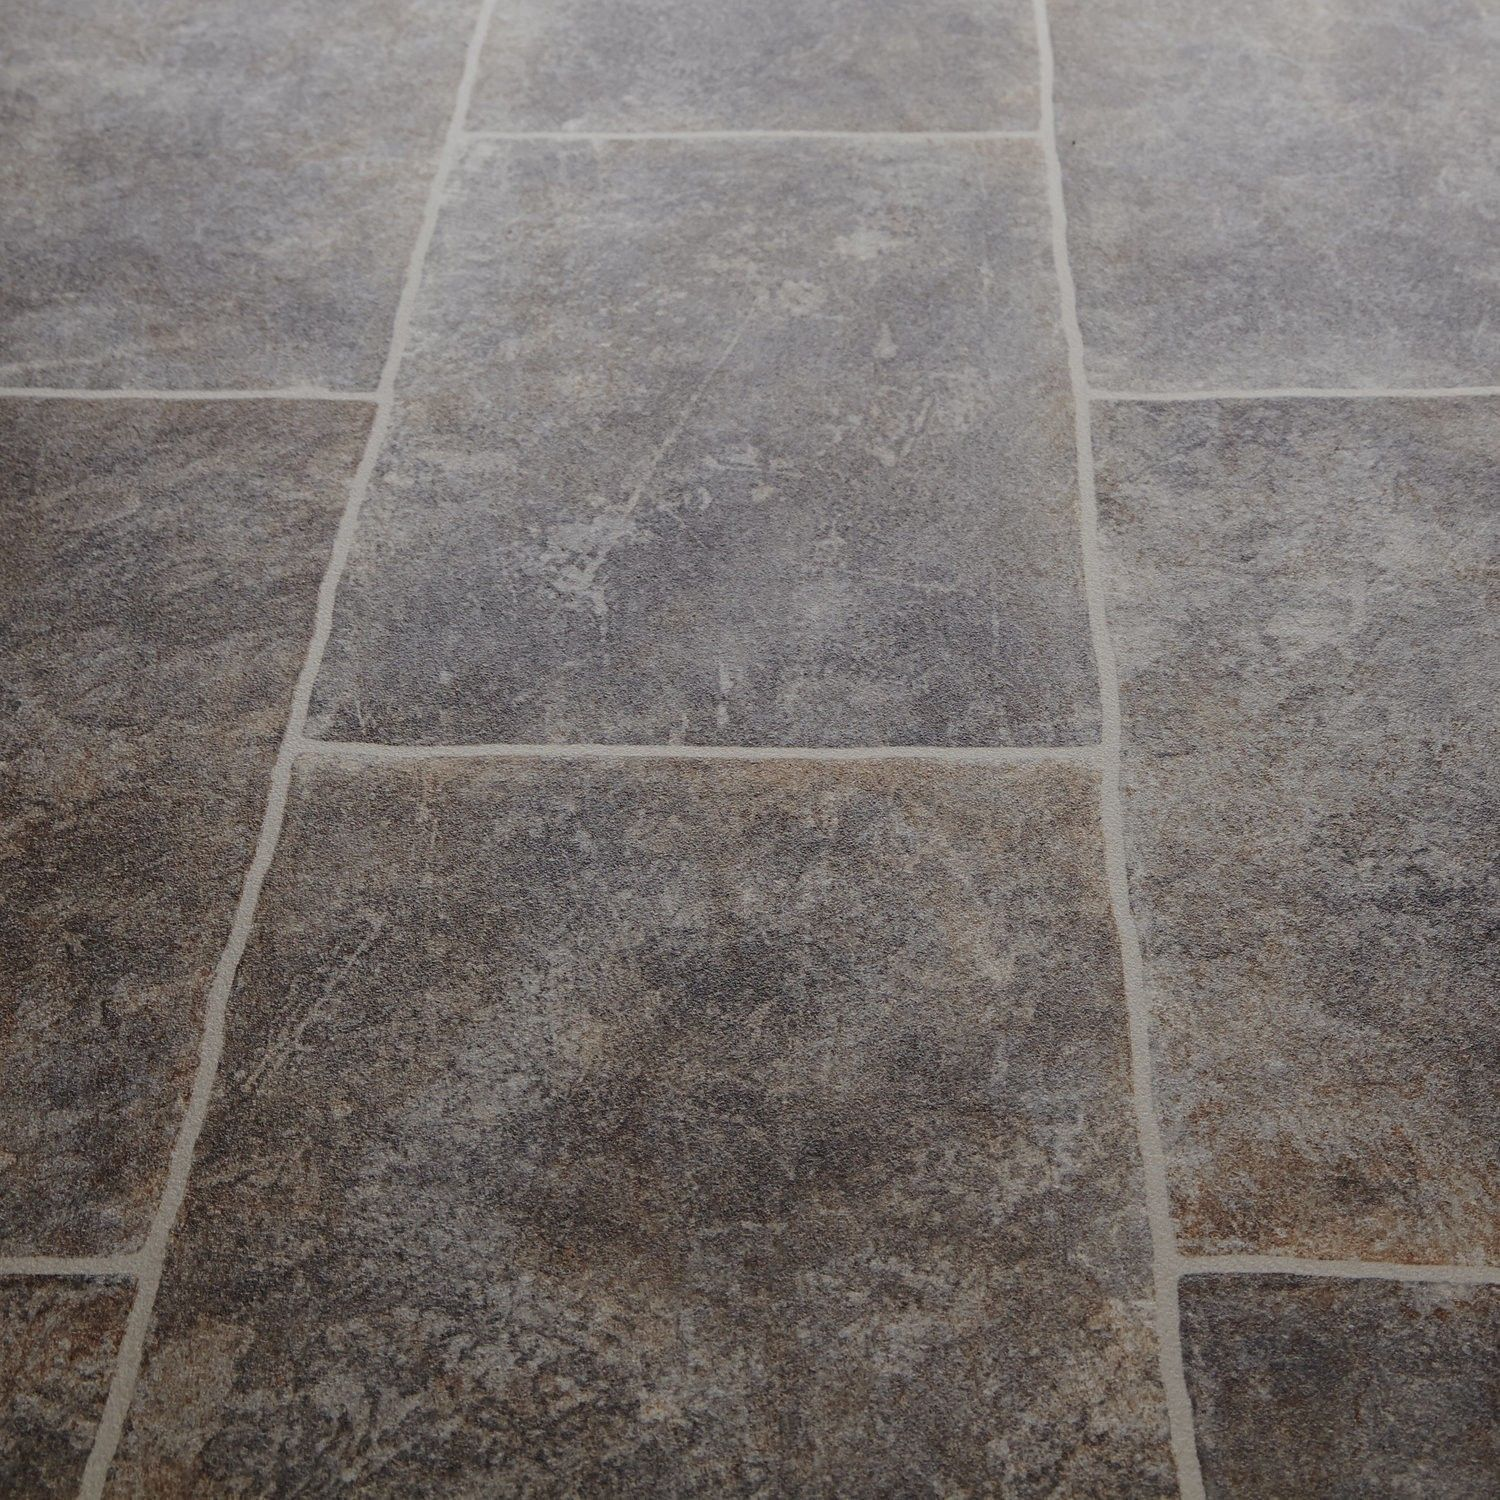 Bounce 94 everest stone tile vinyl flooring kitchen for Vinyl kitchen floor tiles